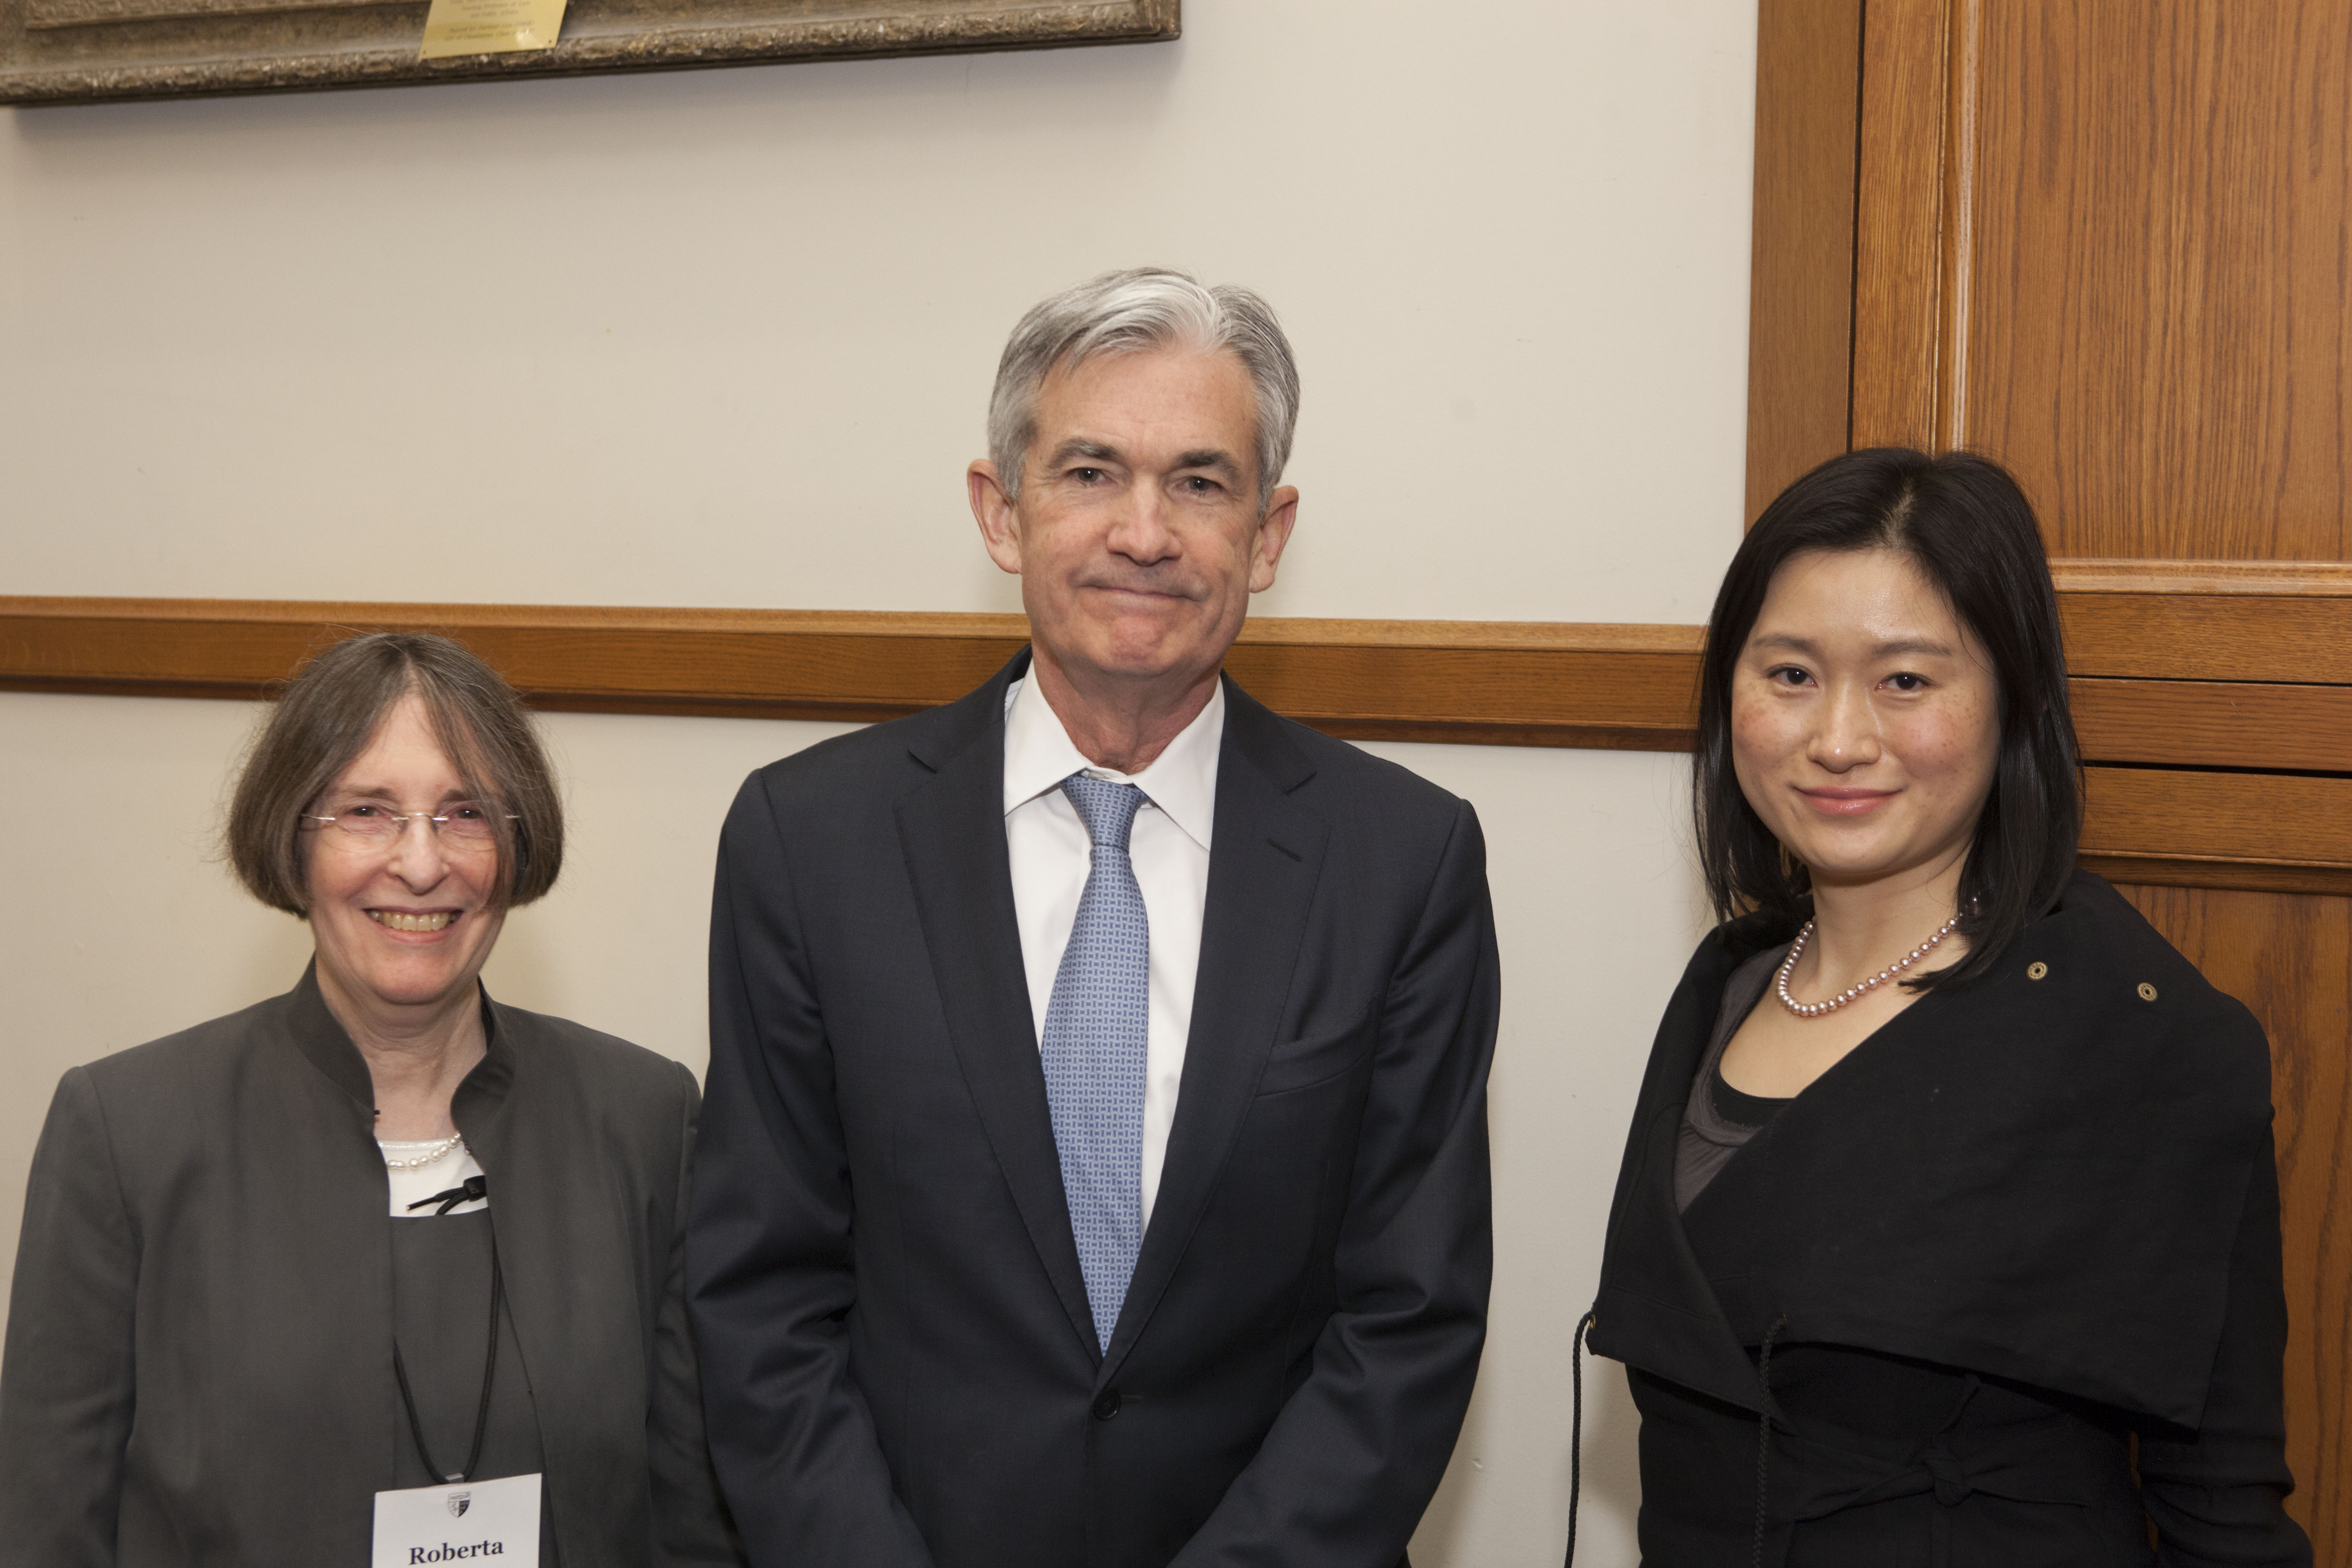 YLS Prof. and Center Dir. Roberta Romano '80, Fed. Res. Bd. Gov. Jerome H. Powell, and Center Exec. Dir. Nancy Liao '05